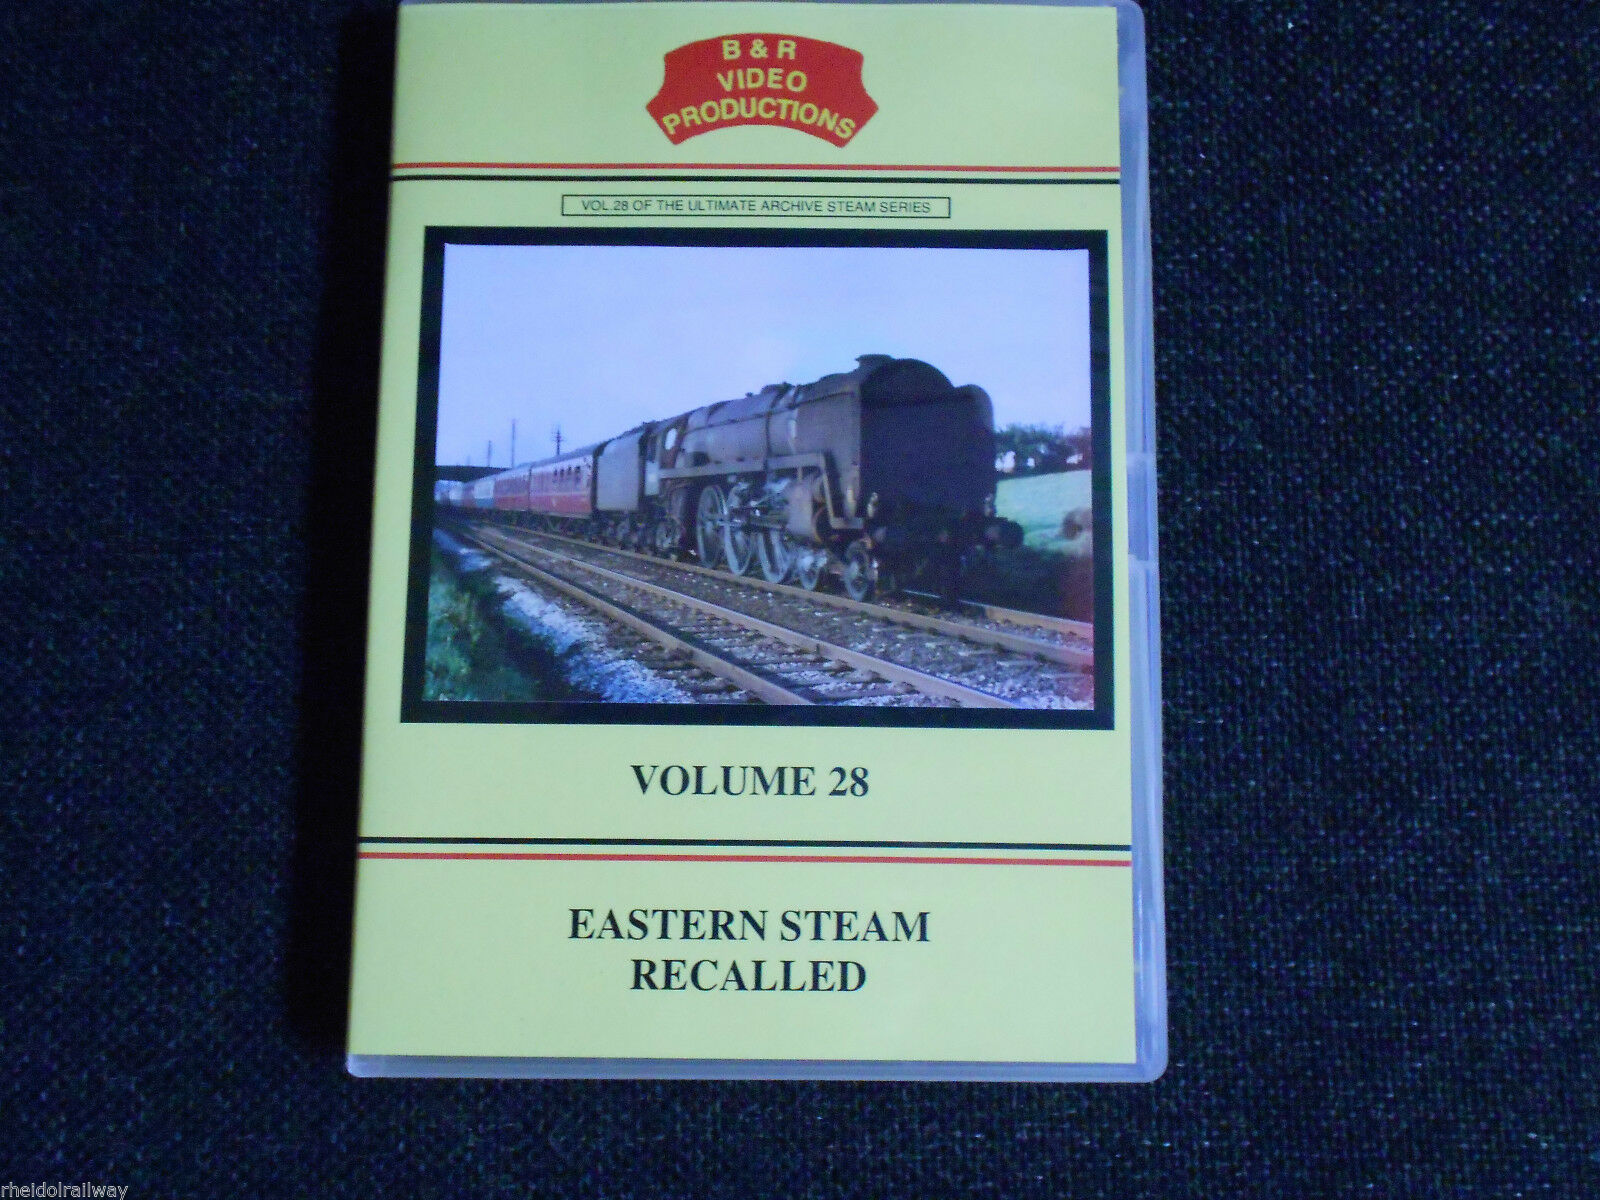 Liverpool Street, Epping, Ongar, Eastern Steam Recalled, B & R Volume 28 DVD